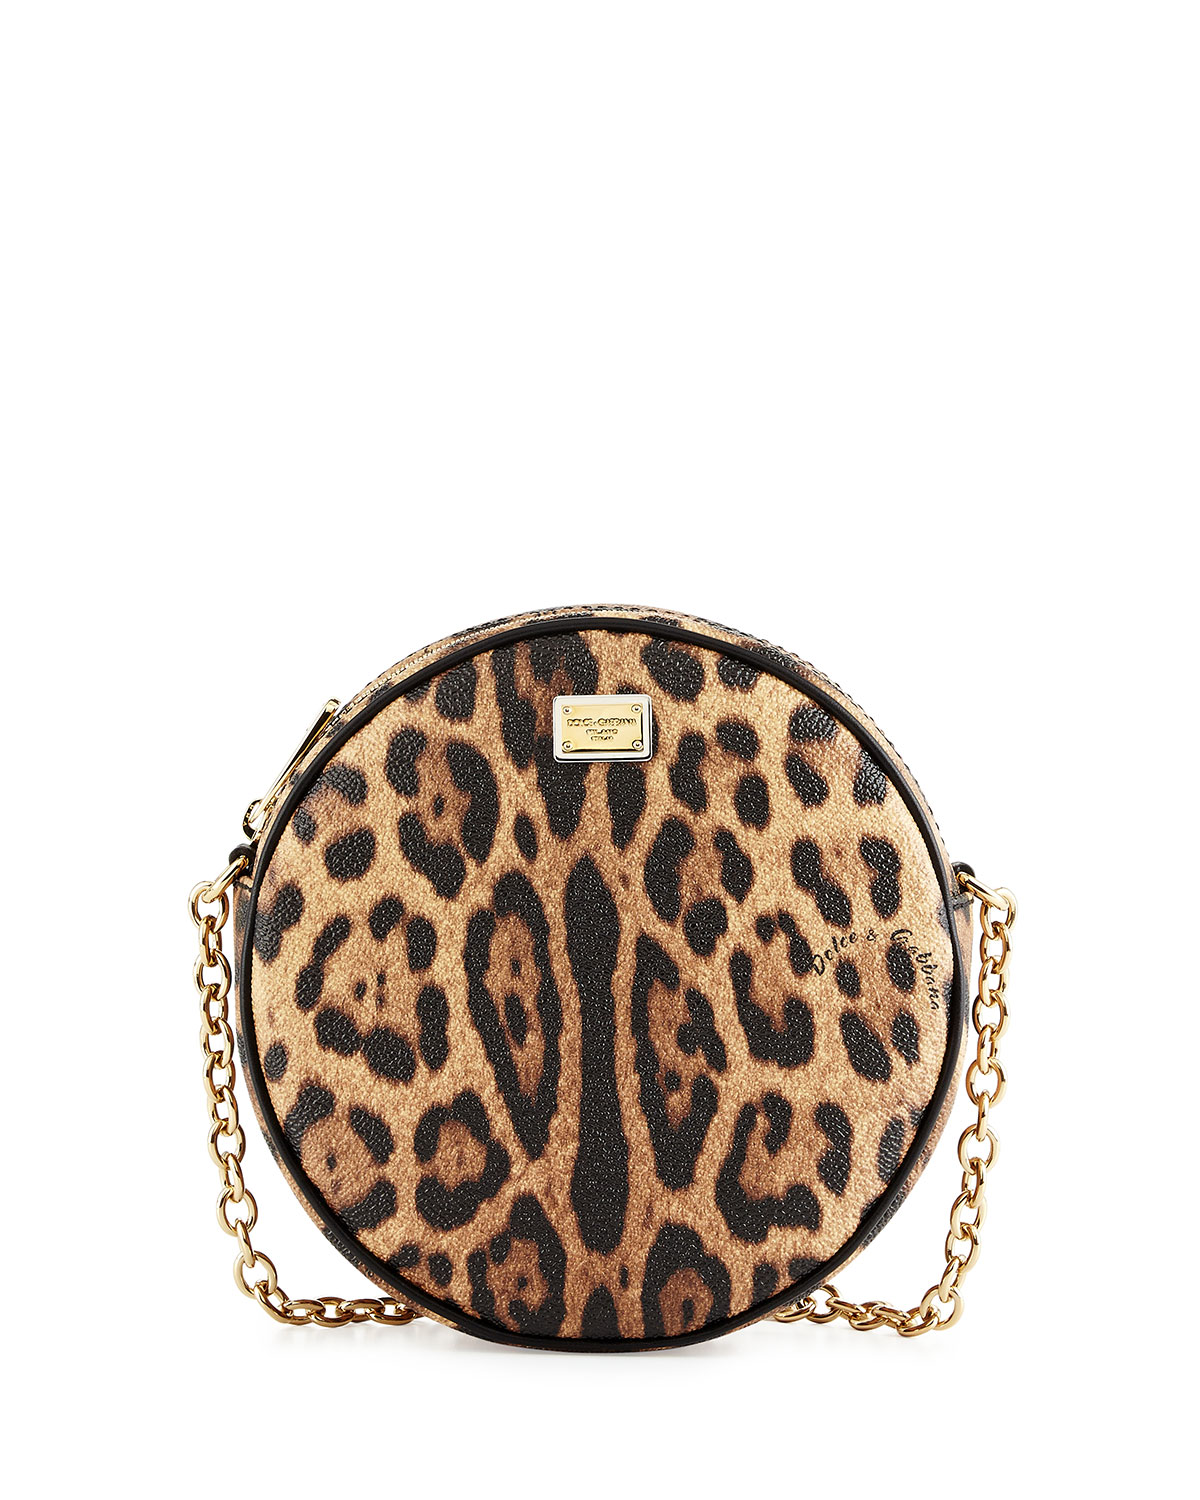 Glam Leopard Print Round Crossbody Bag